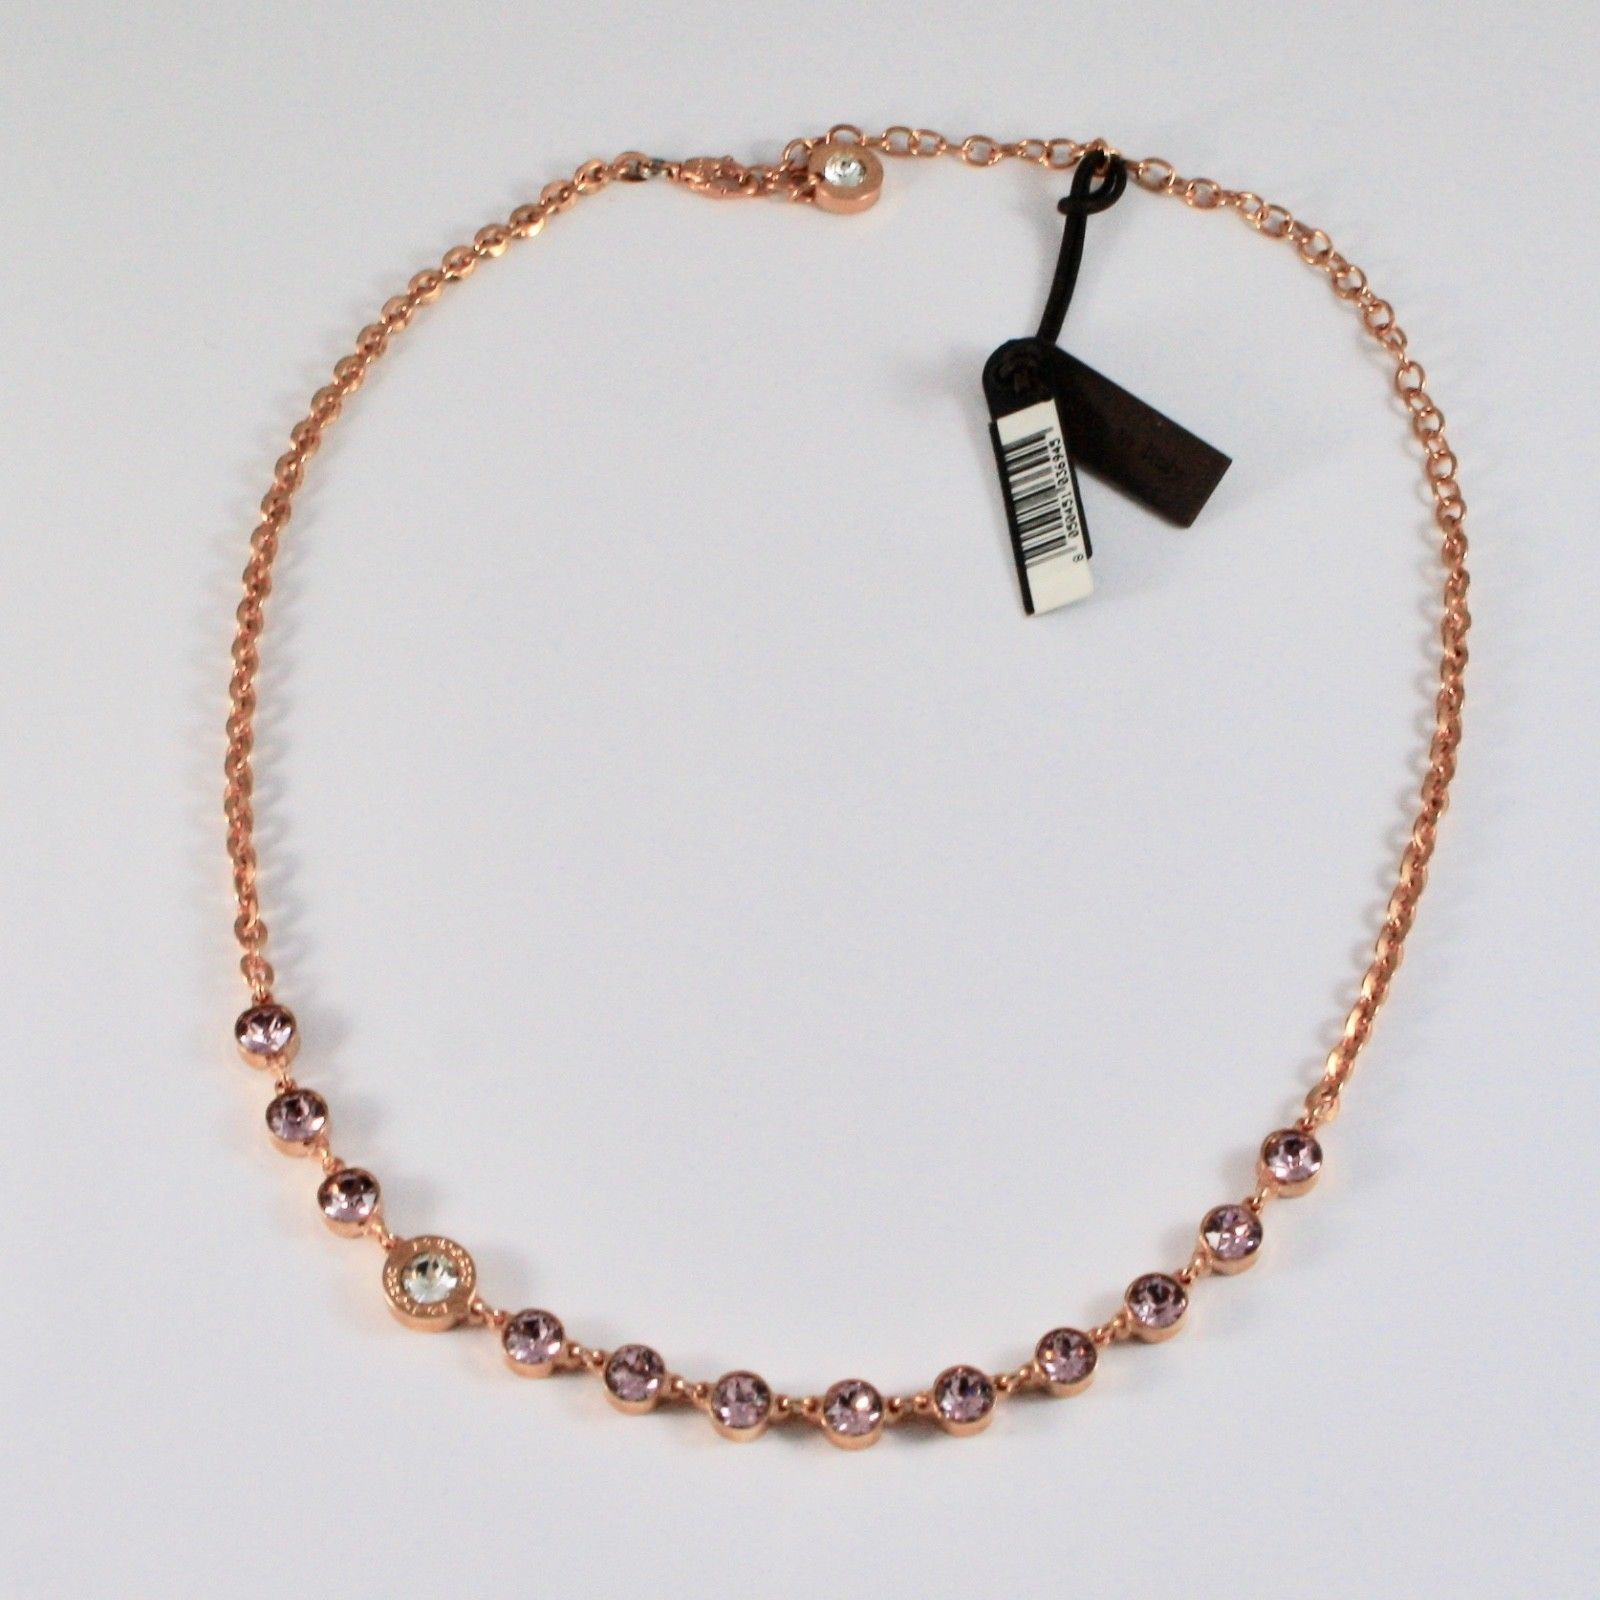 NECKLACE REBECCA BRONZE WITH CRYSTALS PINK BRILLIANT CUT BPBKRA54